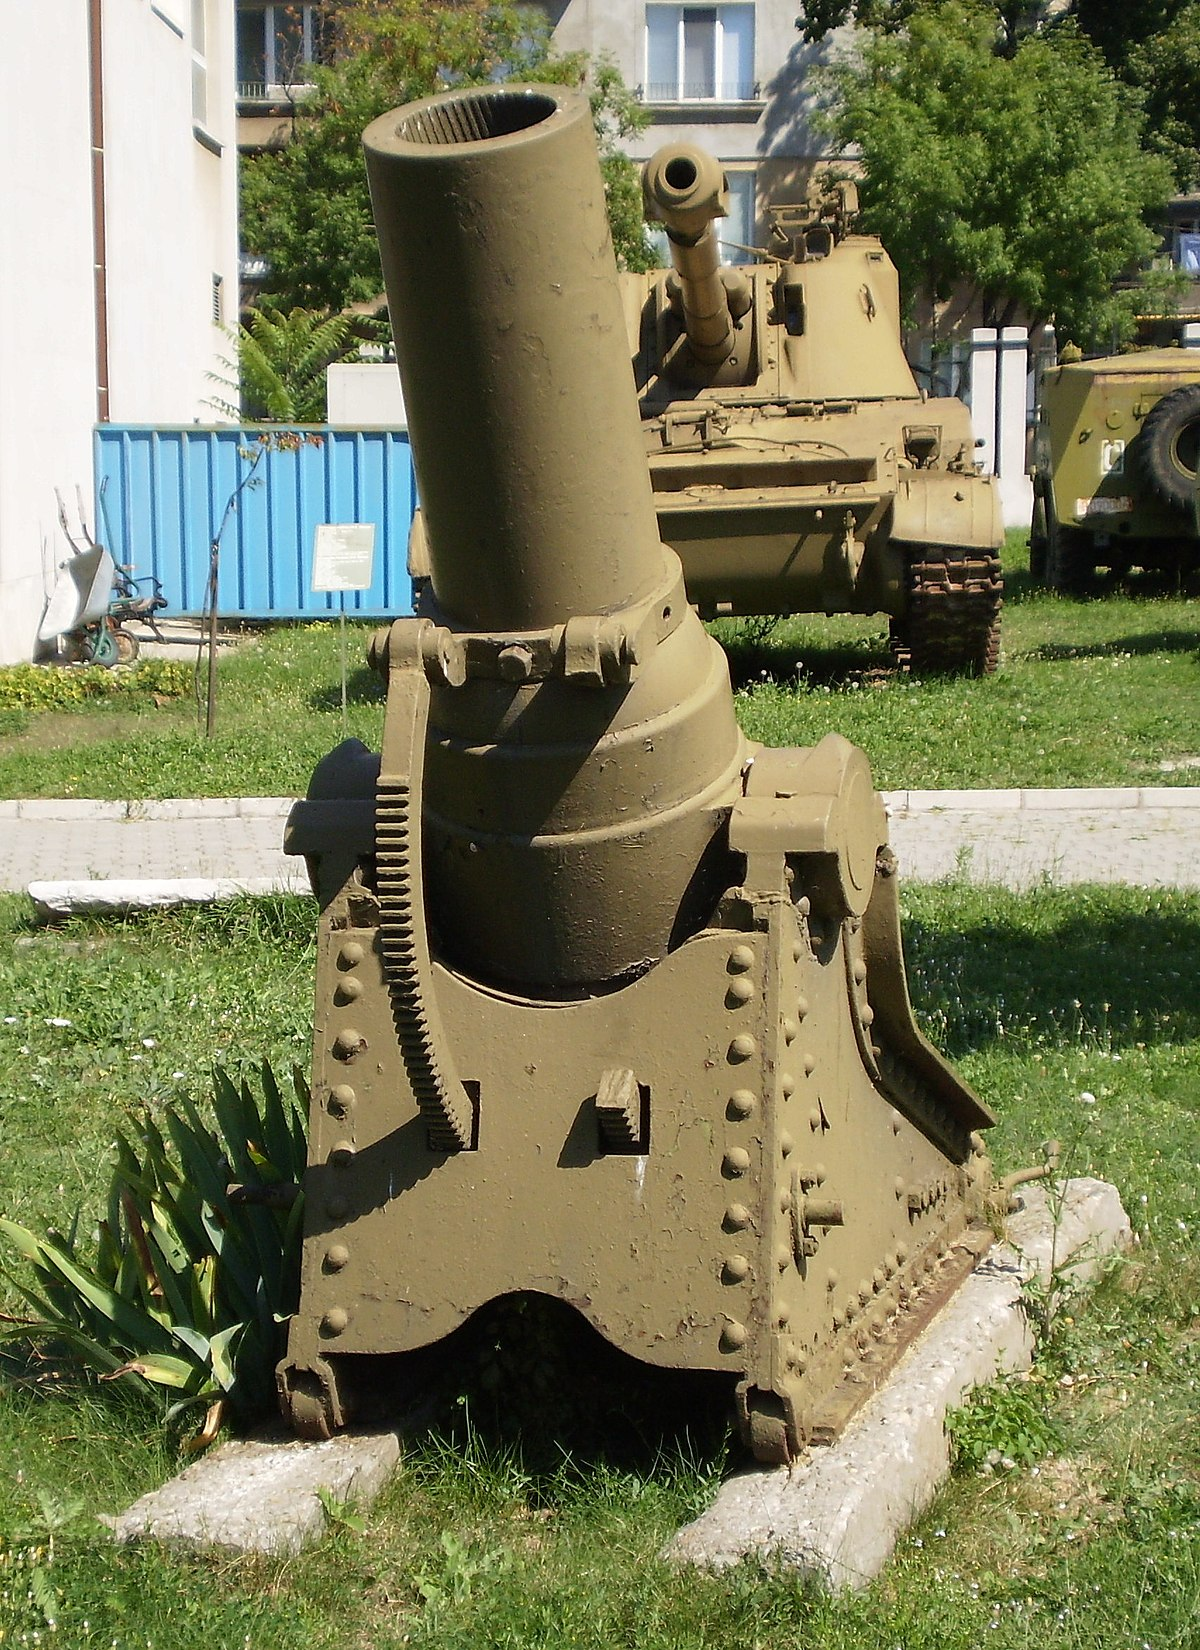 1 Duim In Mm 8-inch Mortar M1877 - Wikipedia